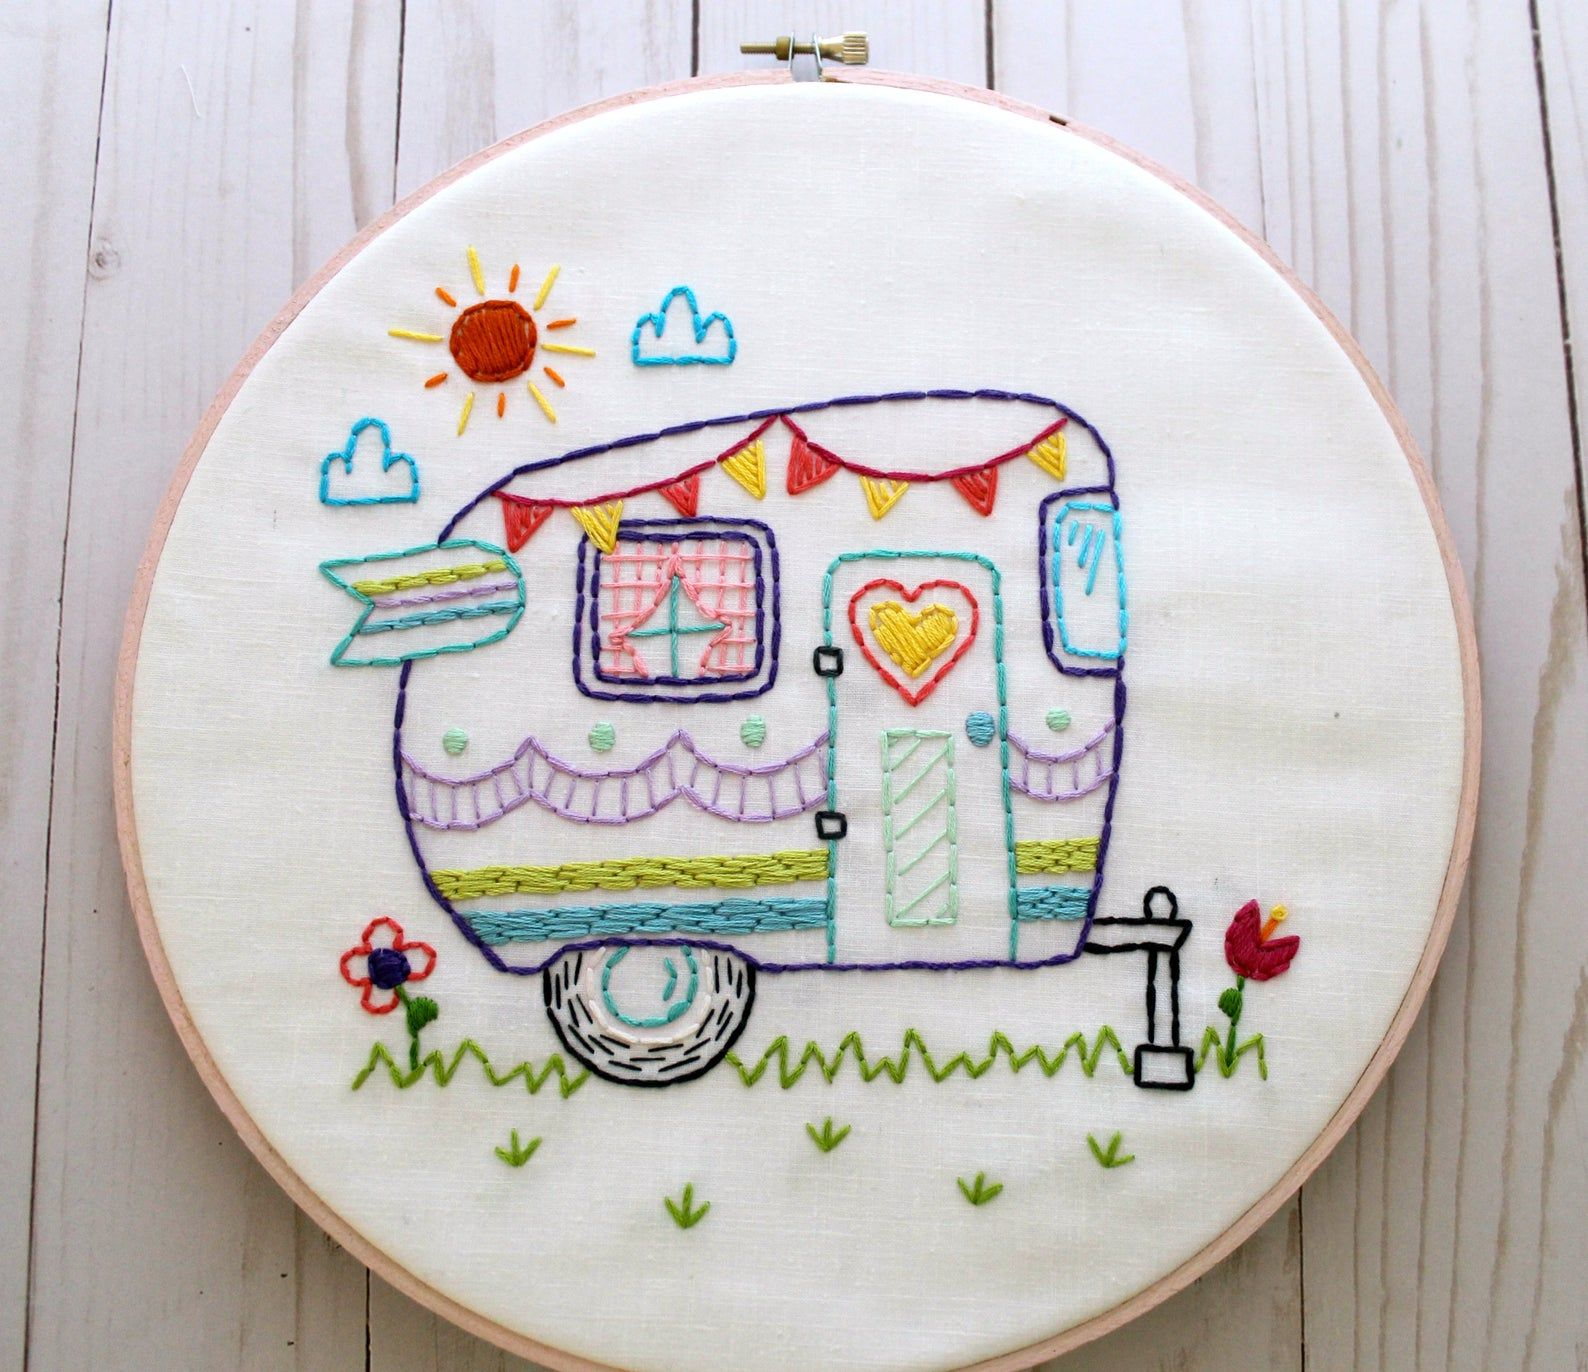 Retro Camper. Hand Embroidery Pattern. PDF Pattern. Summer. Camping. Travel. Road Trip. Embroidery Designs. Vintage Camper. Happy Camper